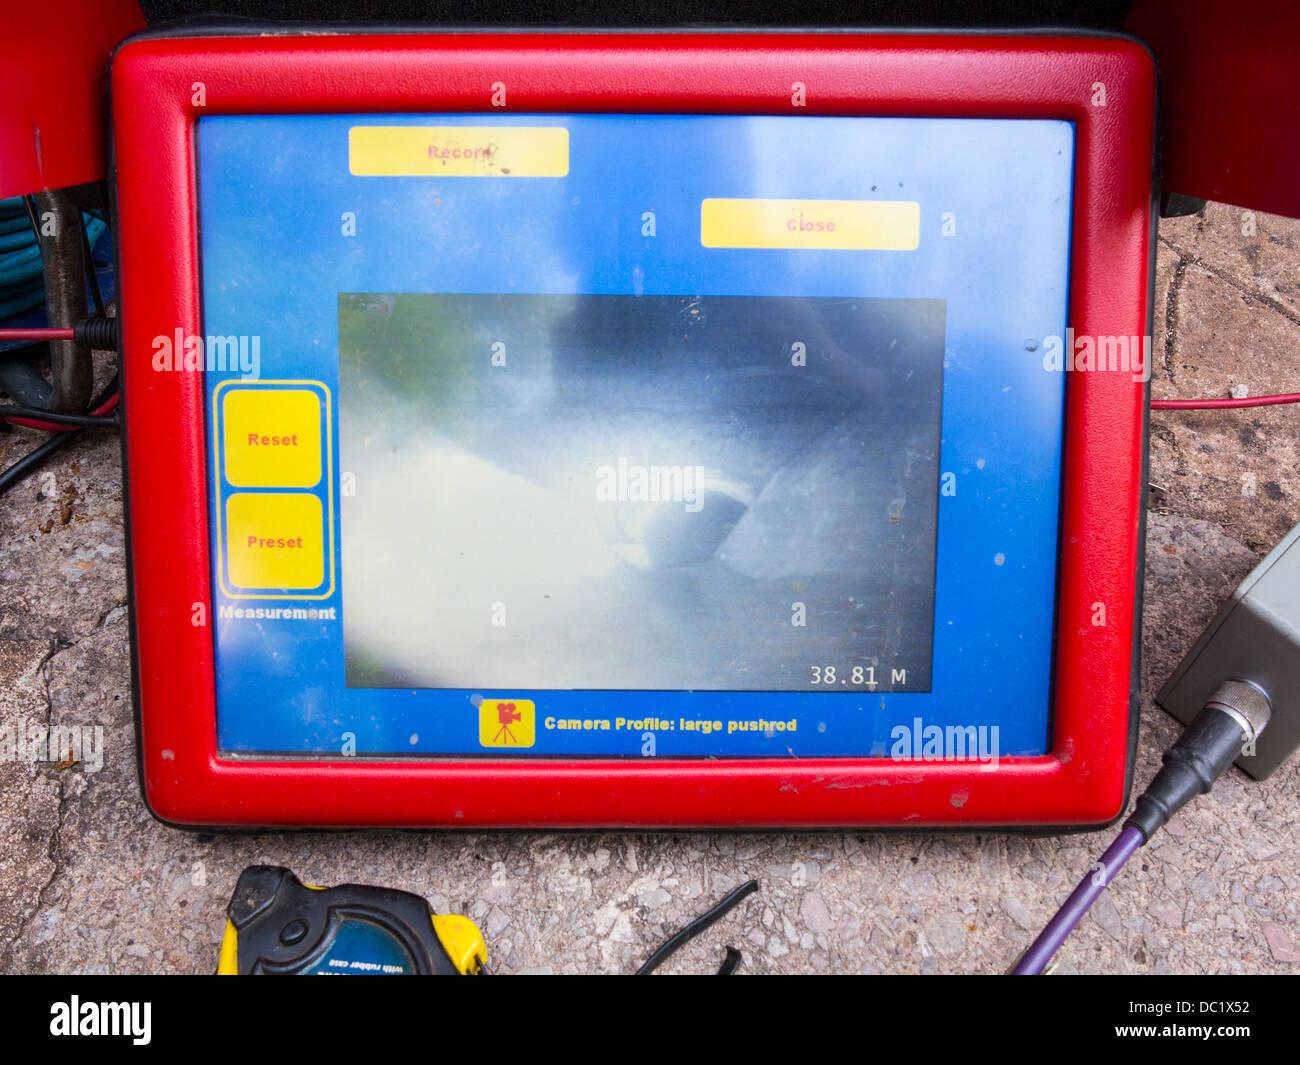 Sewer remote camera monitor showing damage and blockages in an underground sewer drain - Stock Image